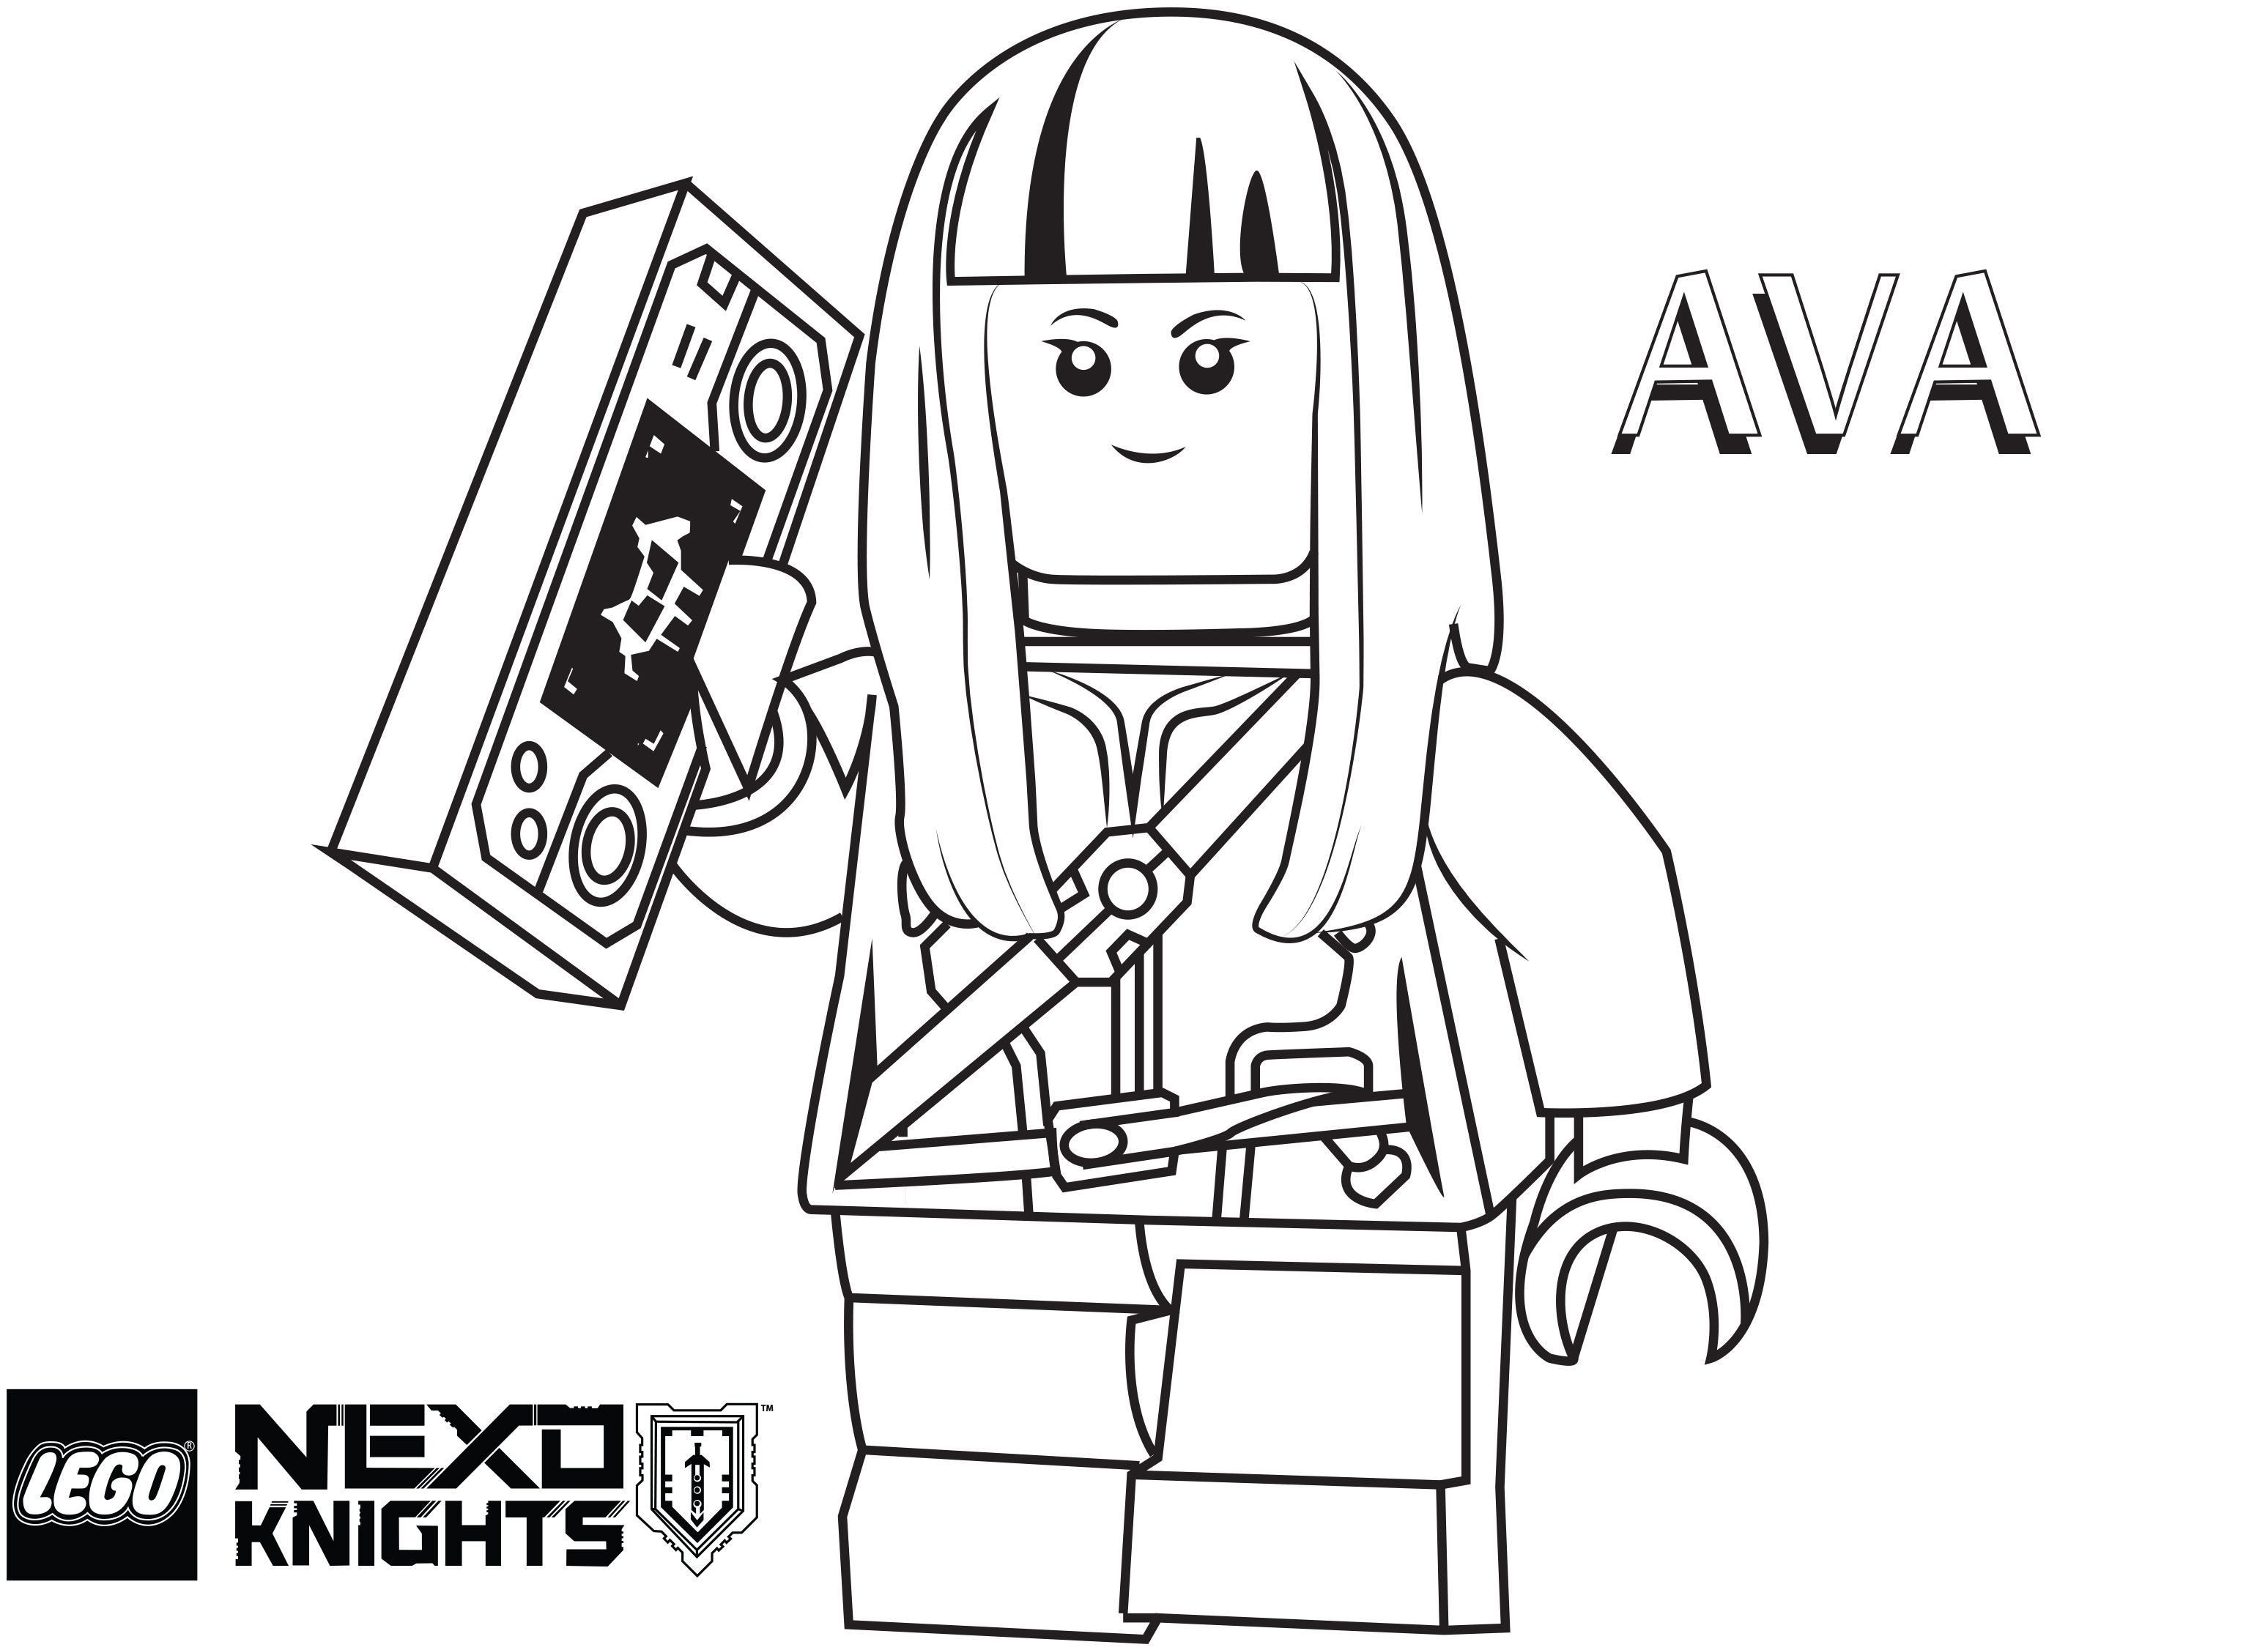 Coloring Pages Nexo Knights : Lego nexo knights coloring pages